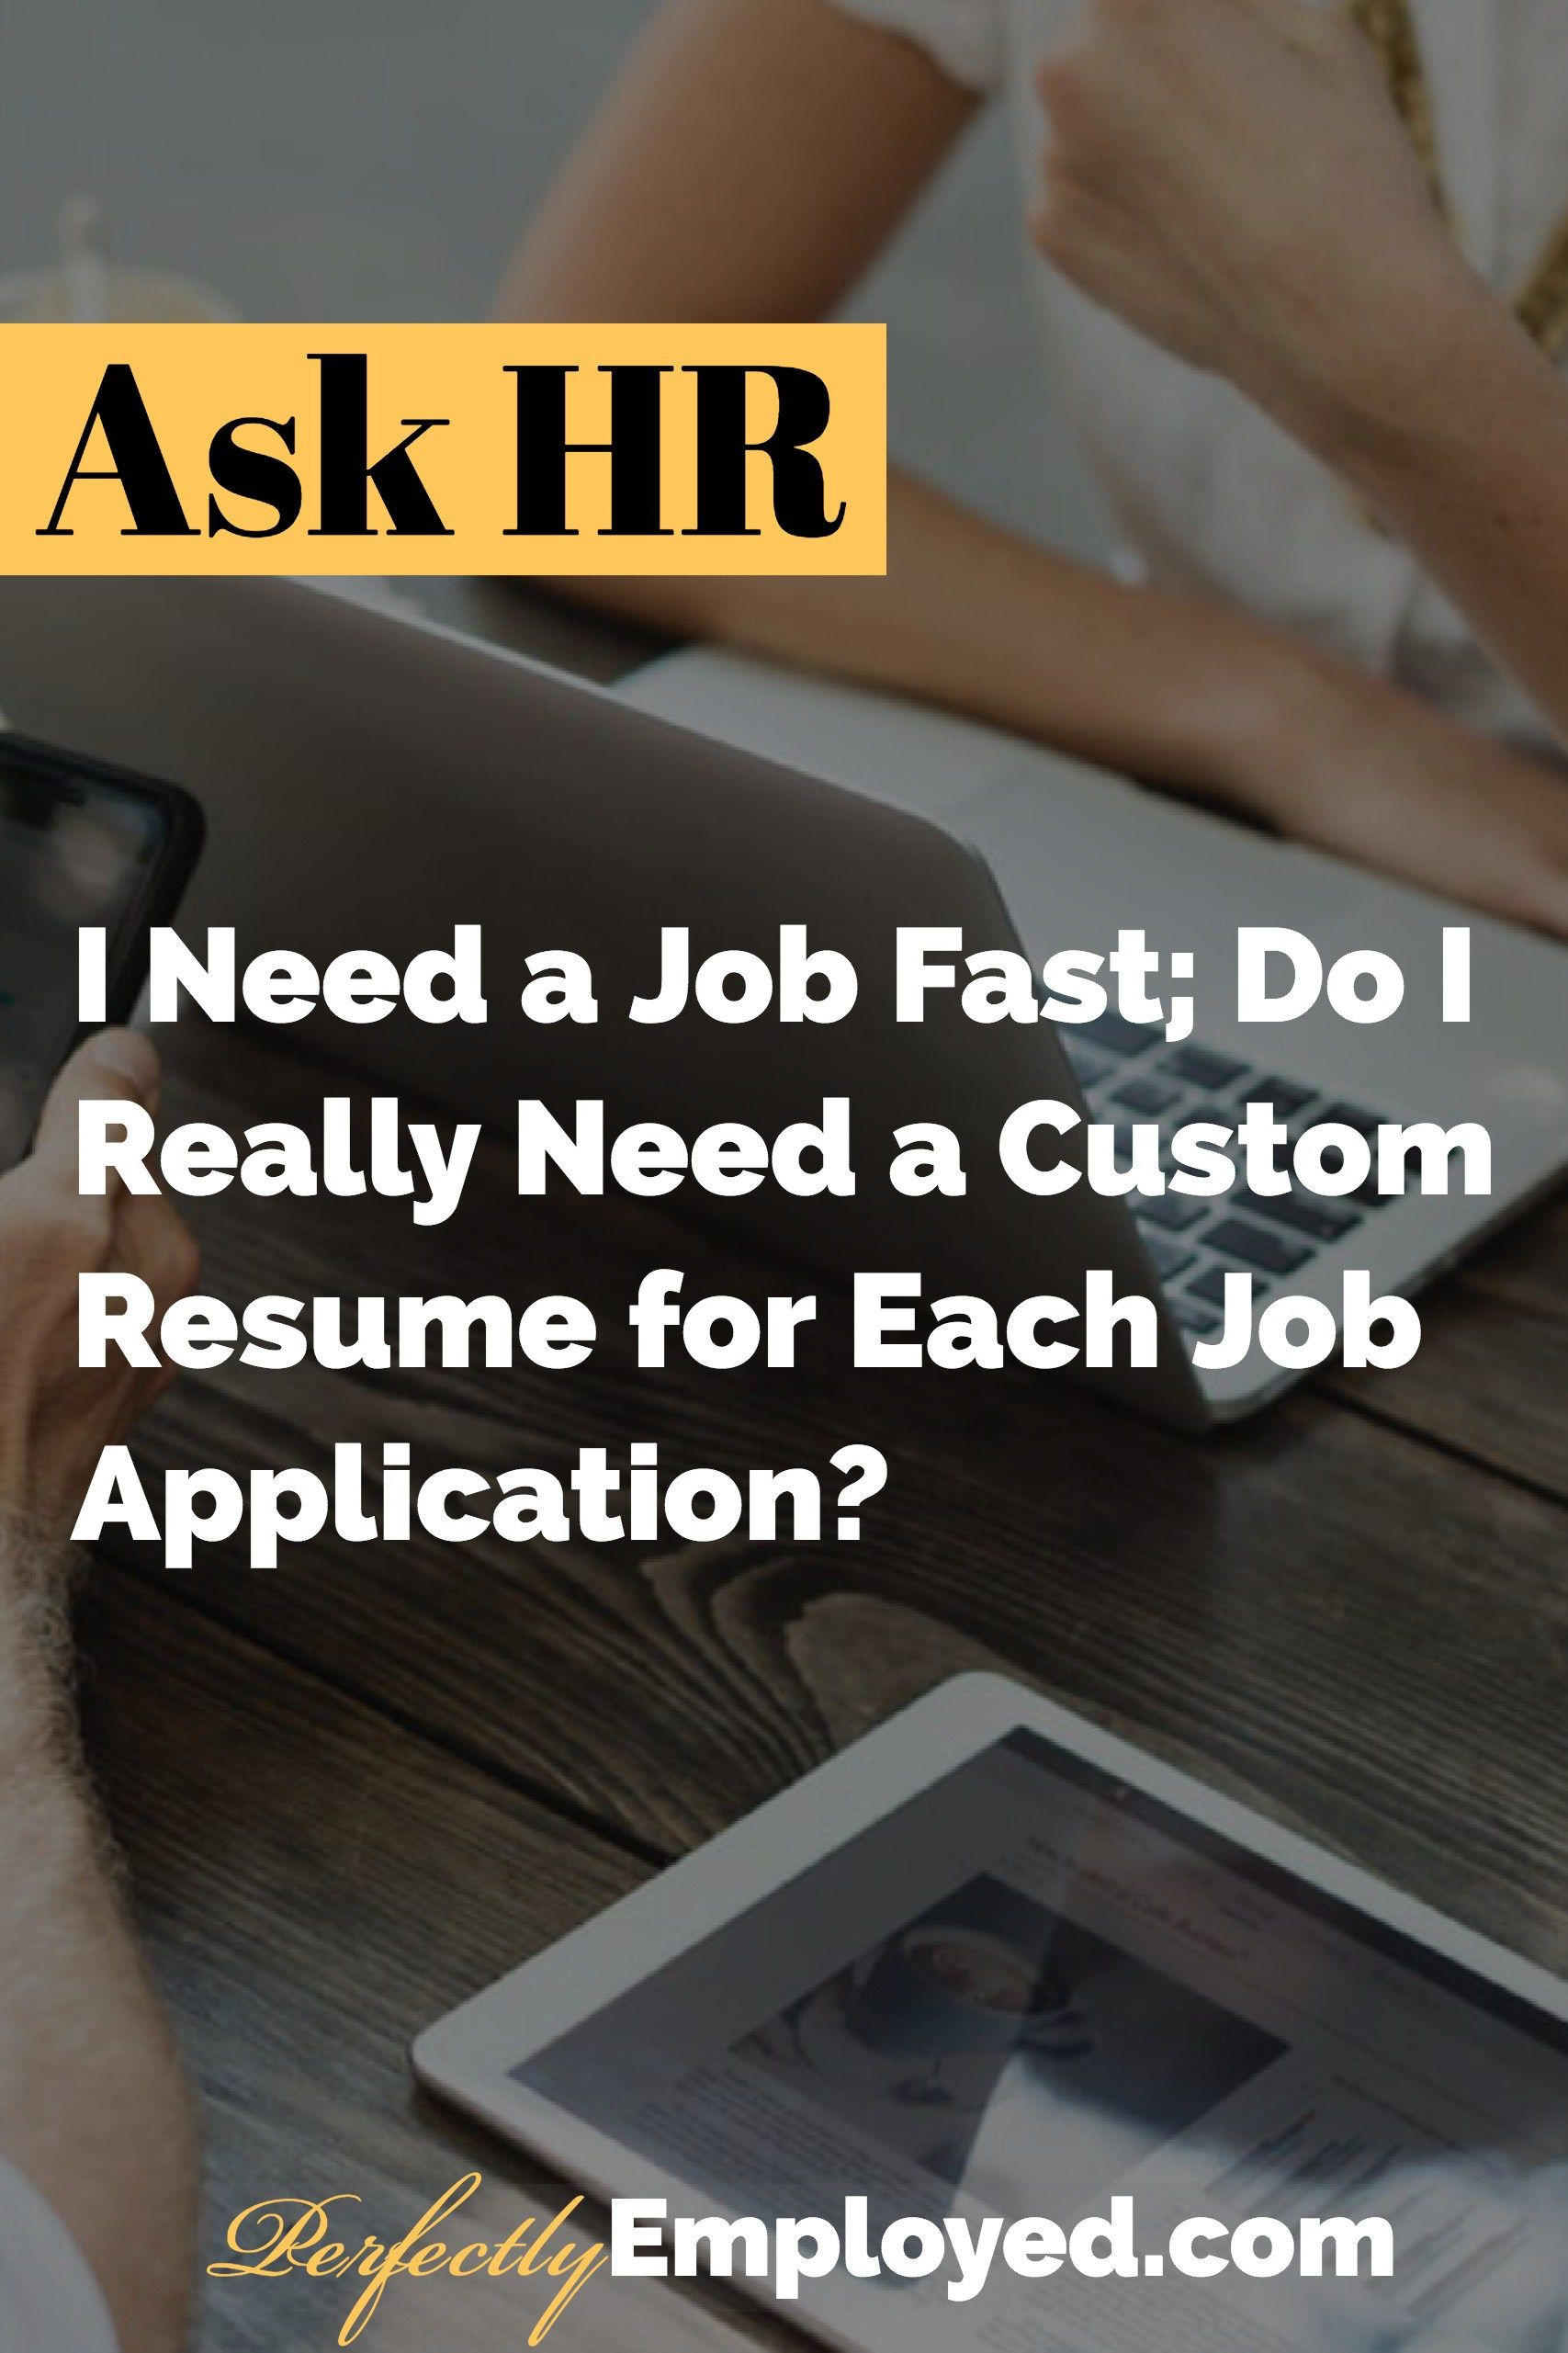 I Need A Job Fast Do Really Custom Resume For Each